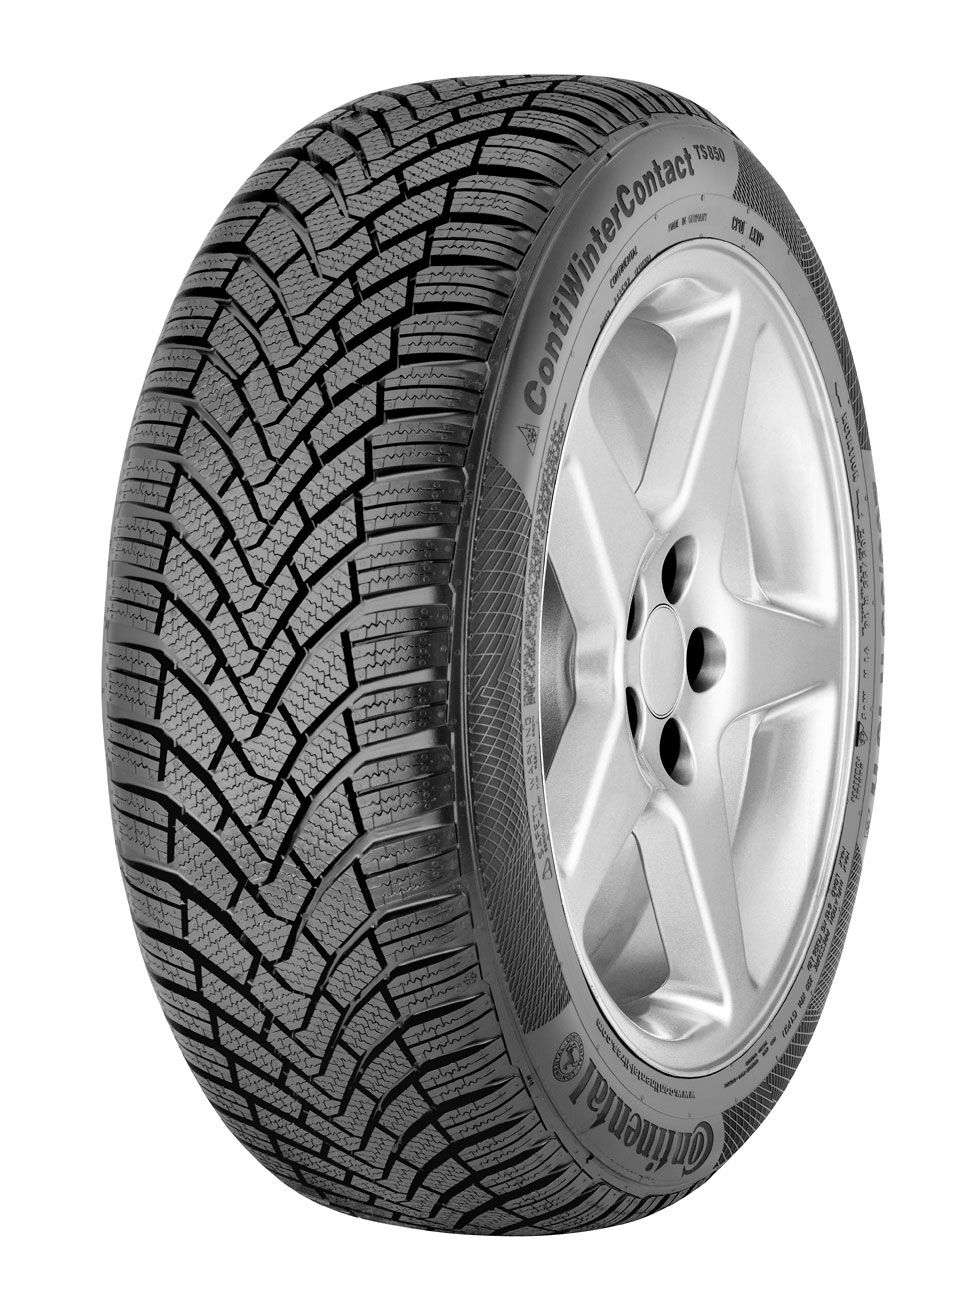 Anvelope Continental Winter Contact Ts810 Ssr 245/50R18 100H Iarna